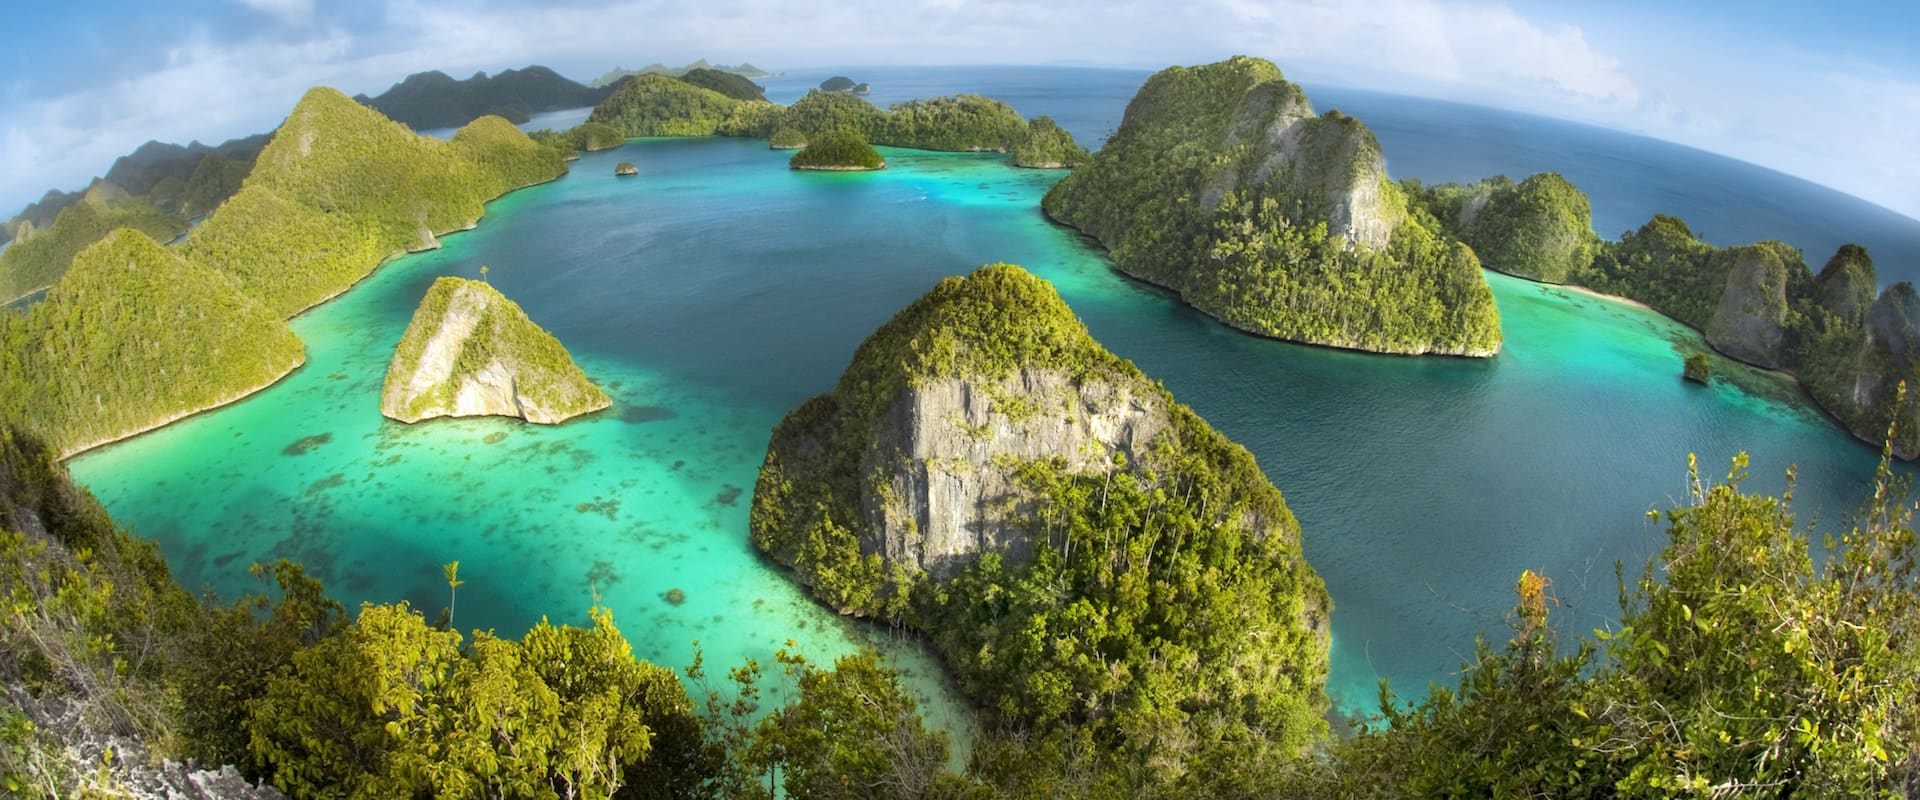 Raja Ampat Adventure Cruises